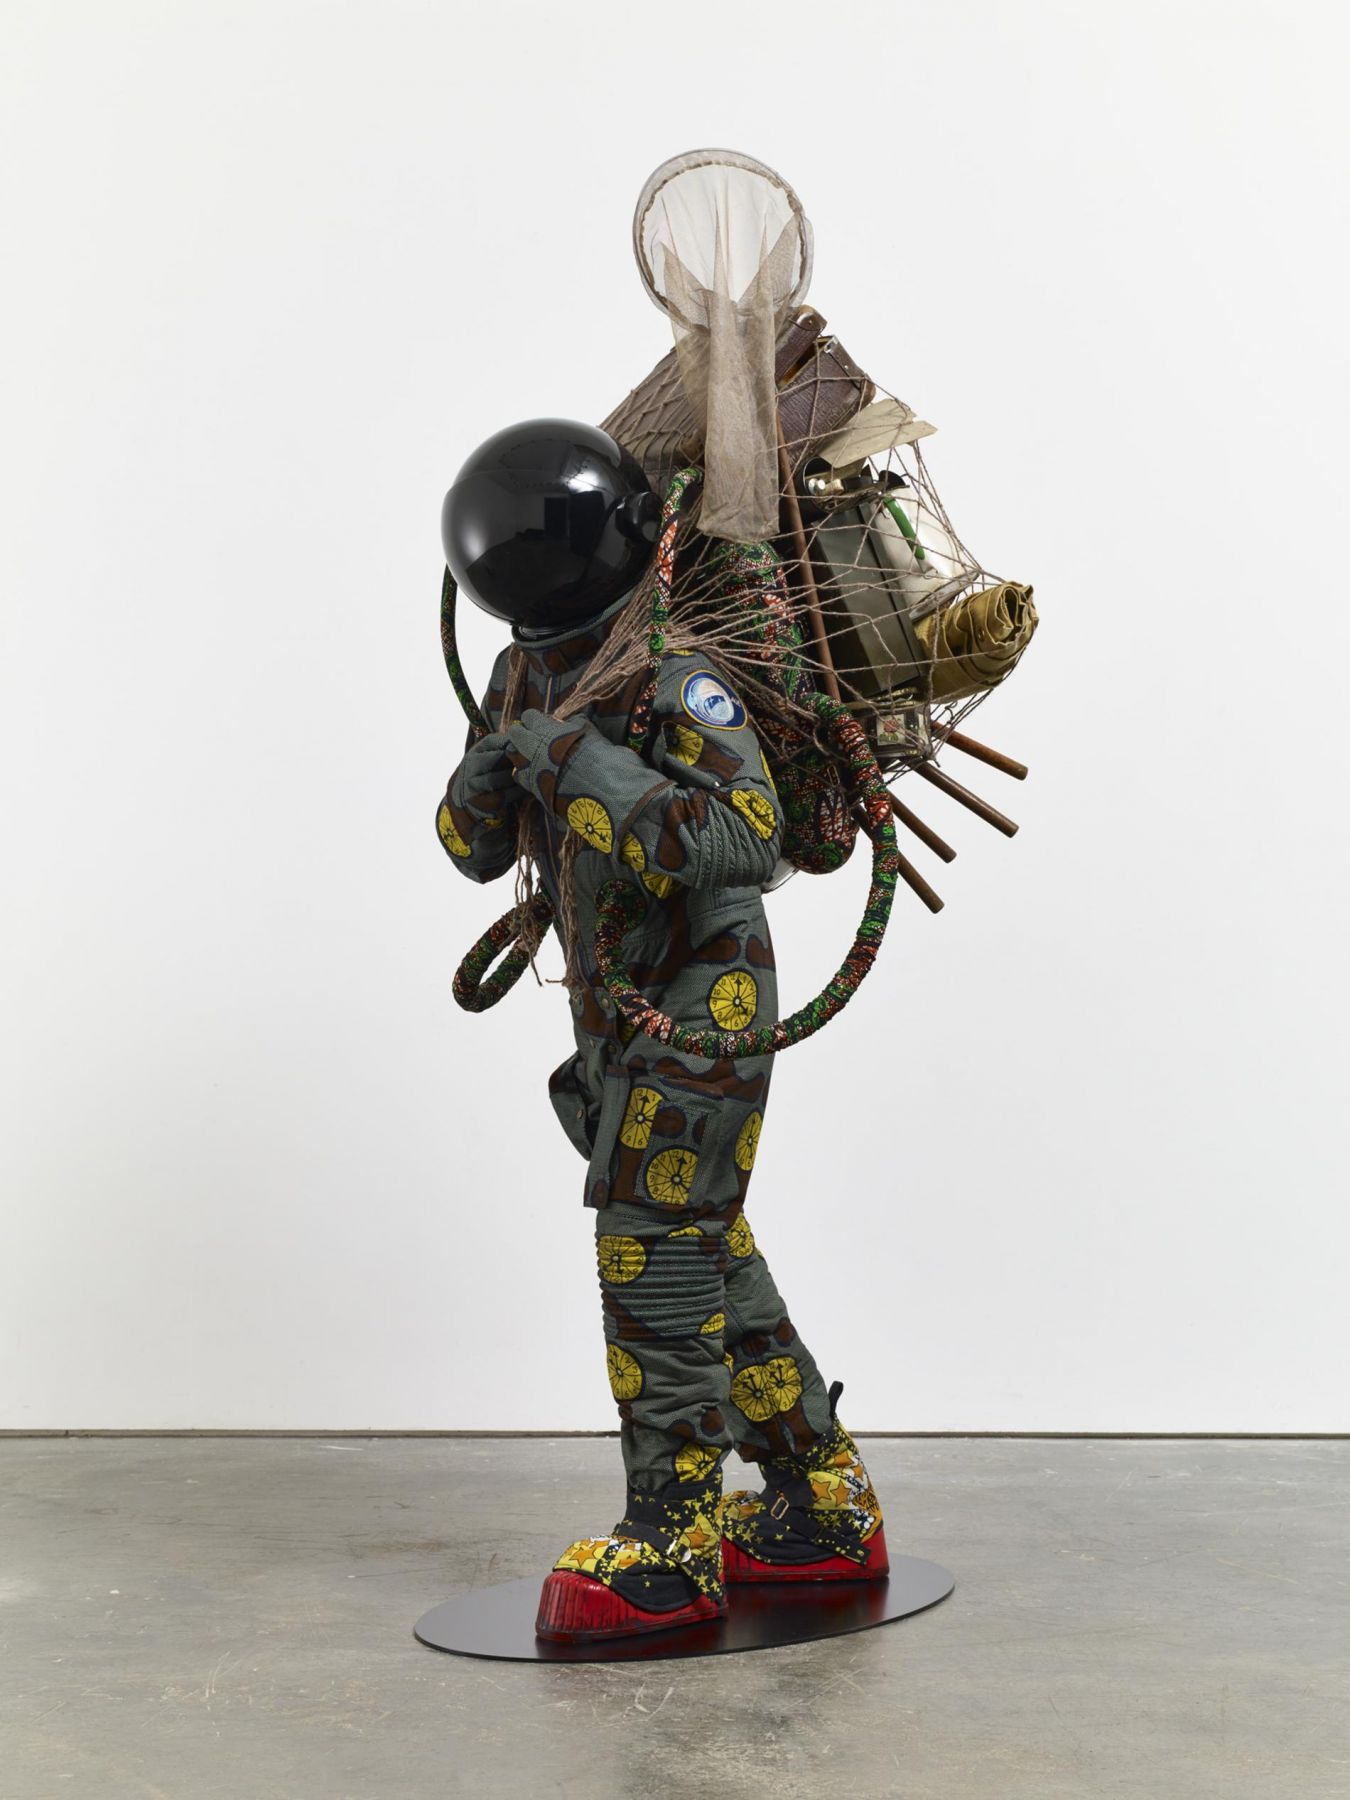 , YINKA SHONIBARE, MBE Refugee Astronaut, 2015 Fibreglass mannequin, Dutch wax printed cotton textile, net, possessions, astronaut helmet, moon boots and steel baseplate 81 7/8 x 36 9/16 x 35 3/8 in. (208 x 93 x 90 cm)